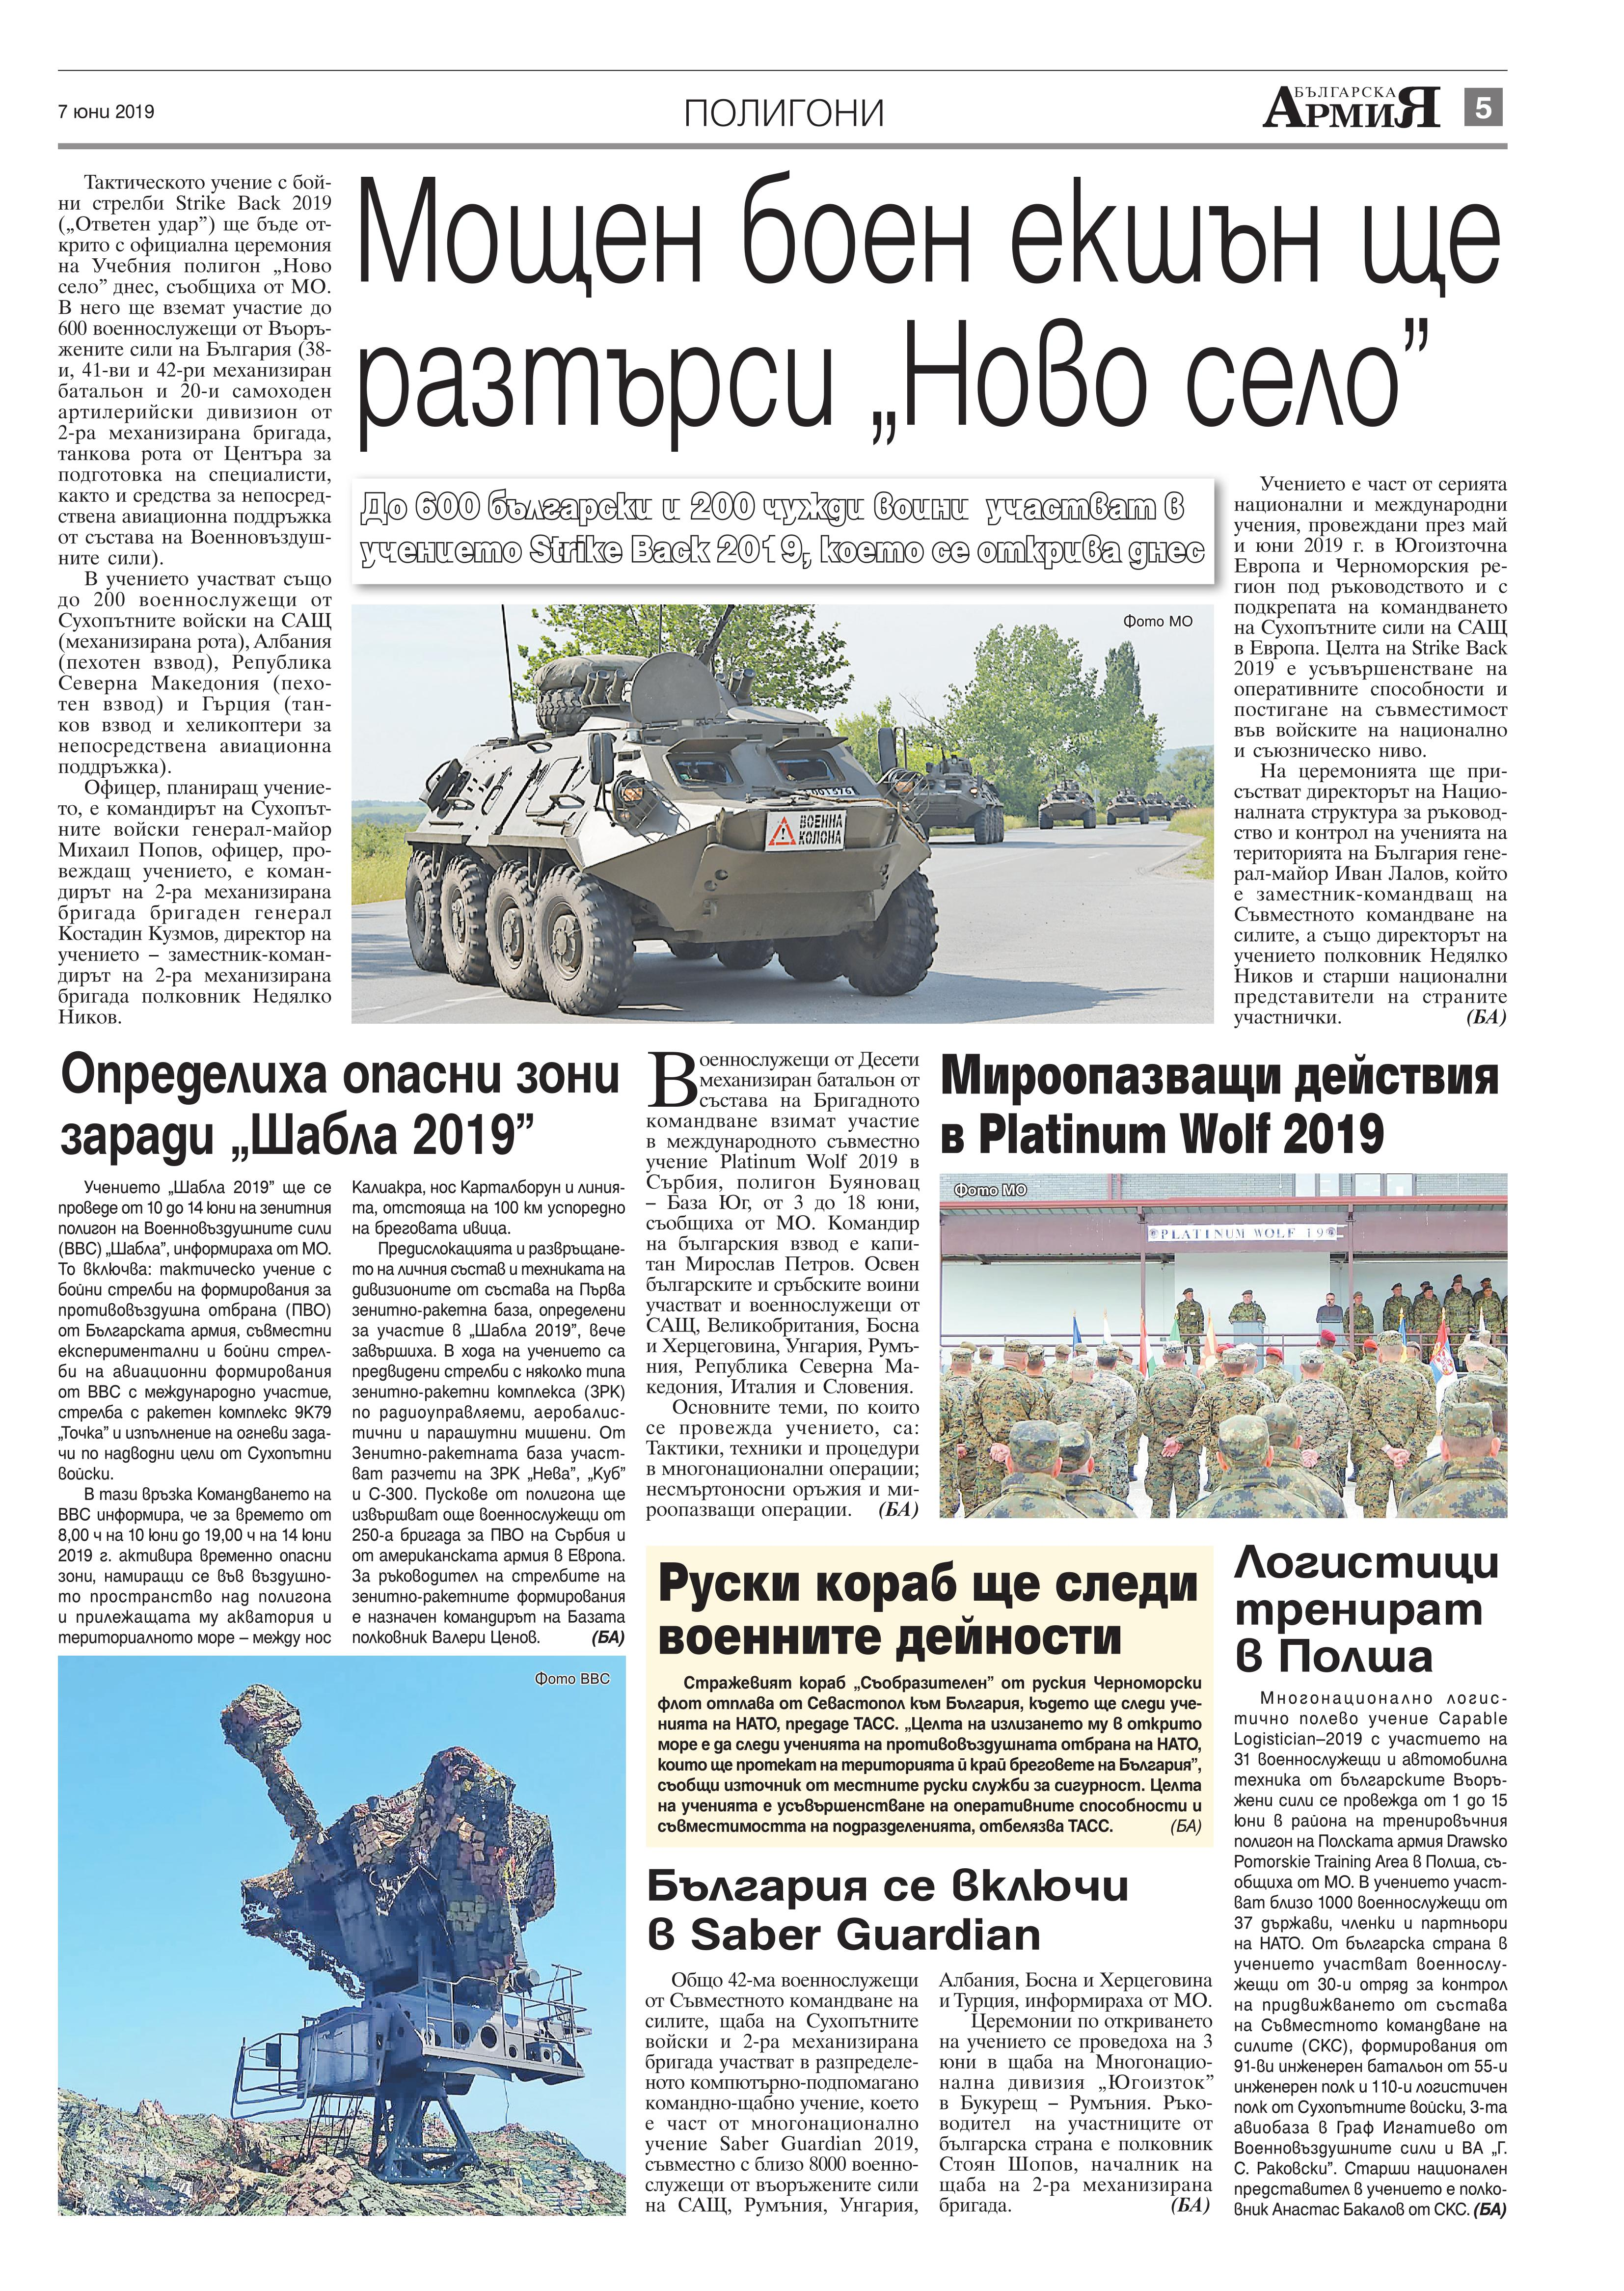 https://www.armymedia.bg/wp-content/uploads/2015/06/05.page1_-94.jpg